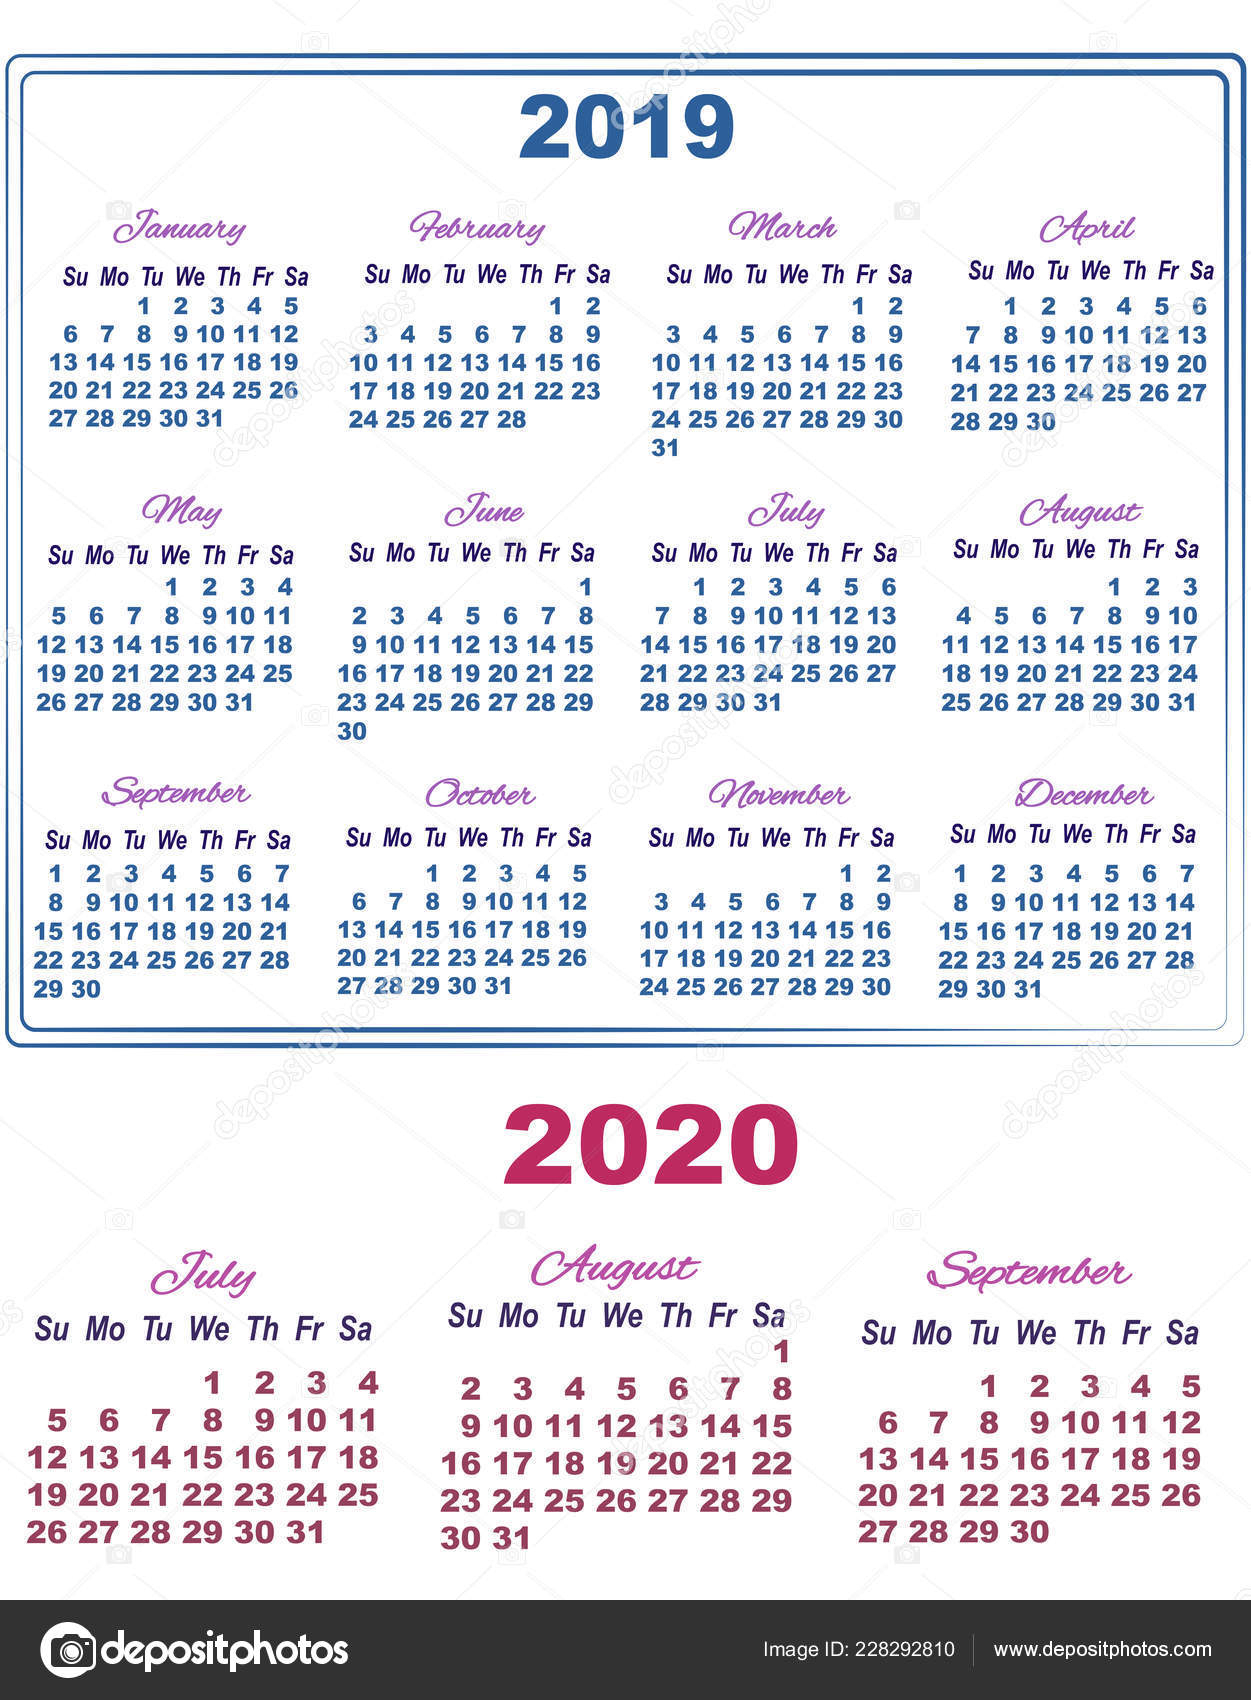 2019 Calendar With July, August And September Of 2020 with regard to July Of 2020